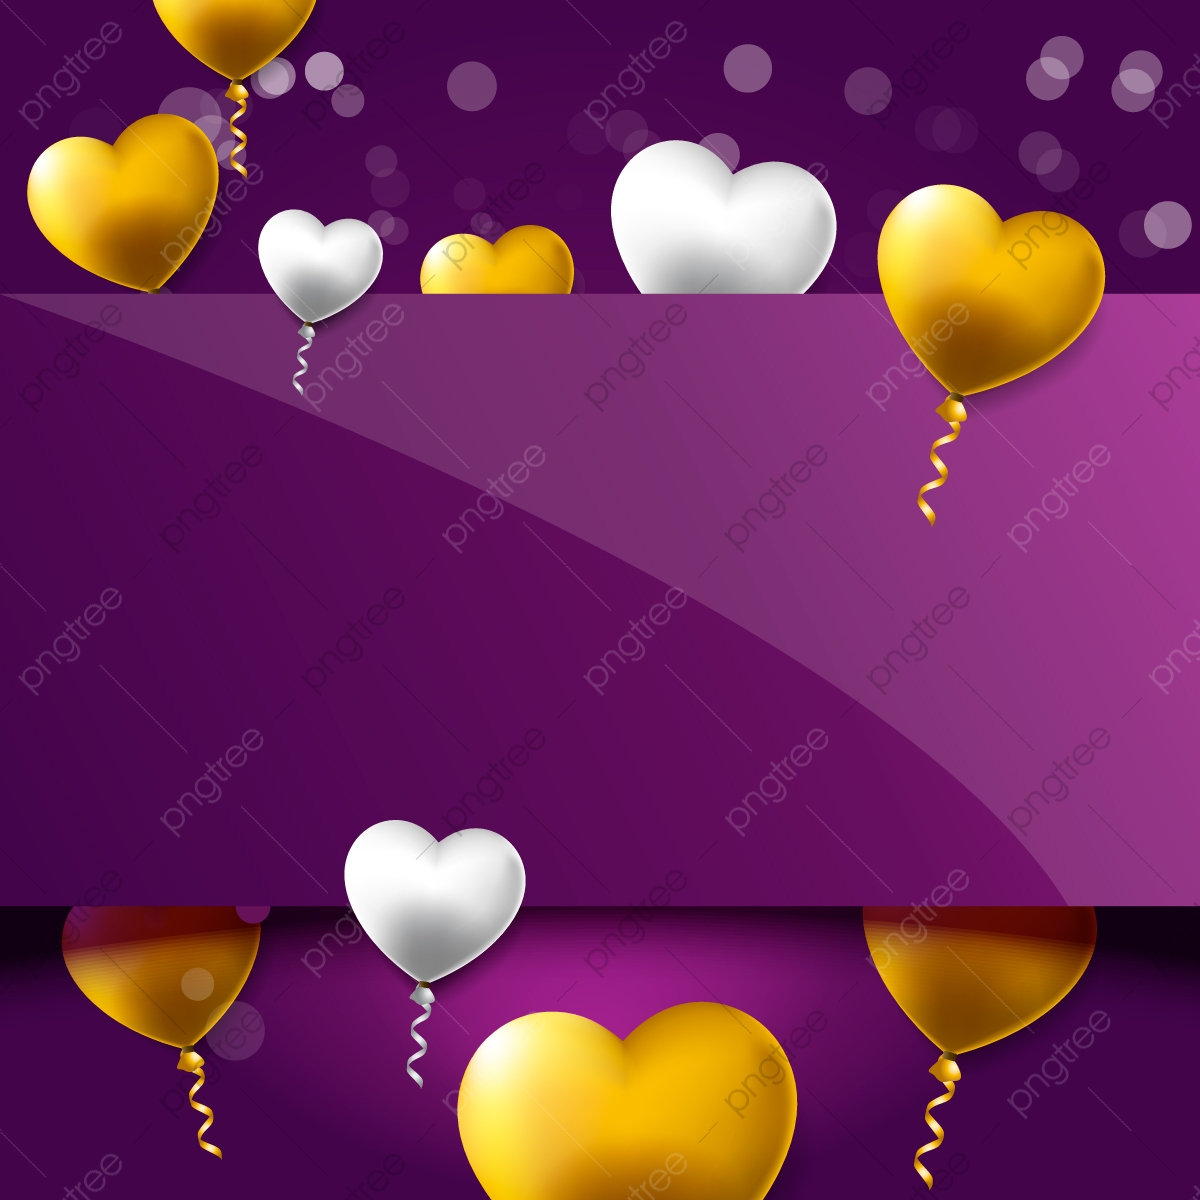 pngtree valentines day template background design with luxury gold and silver balloon png image